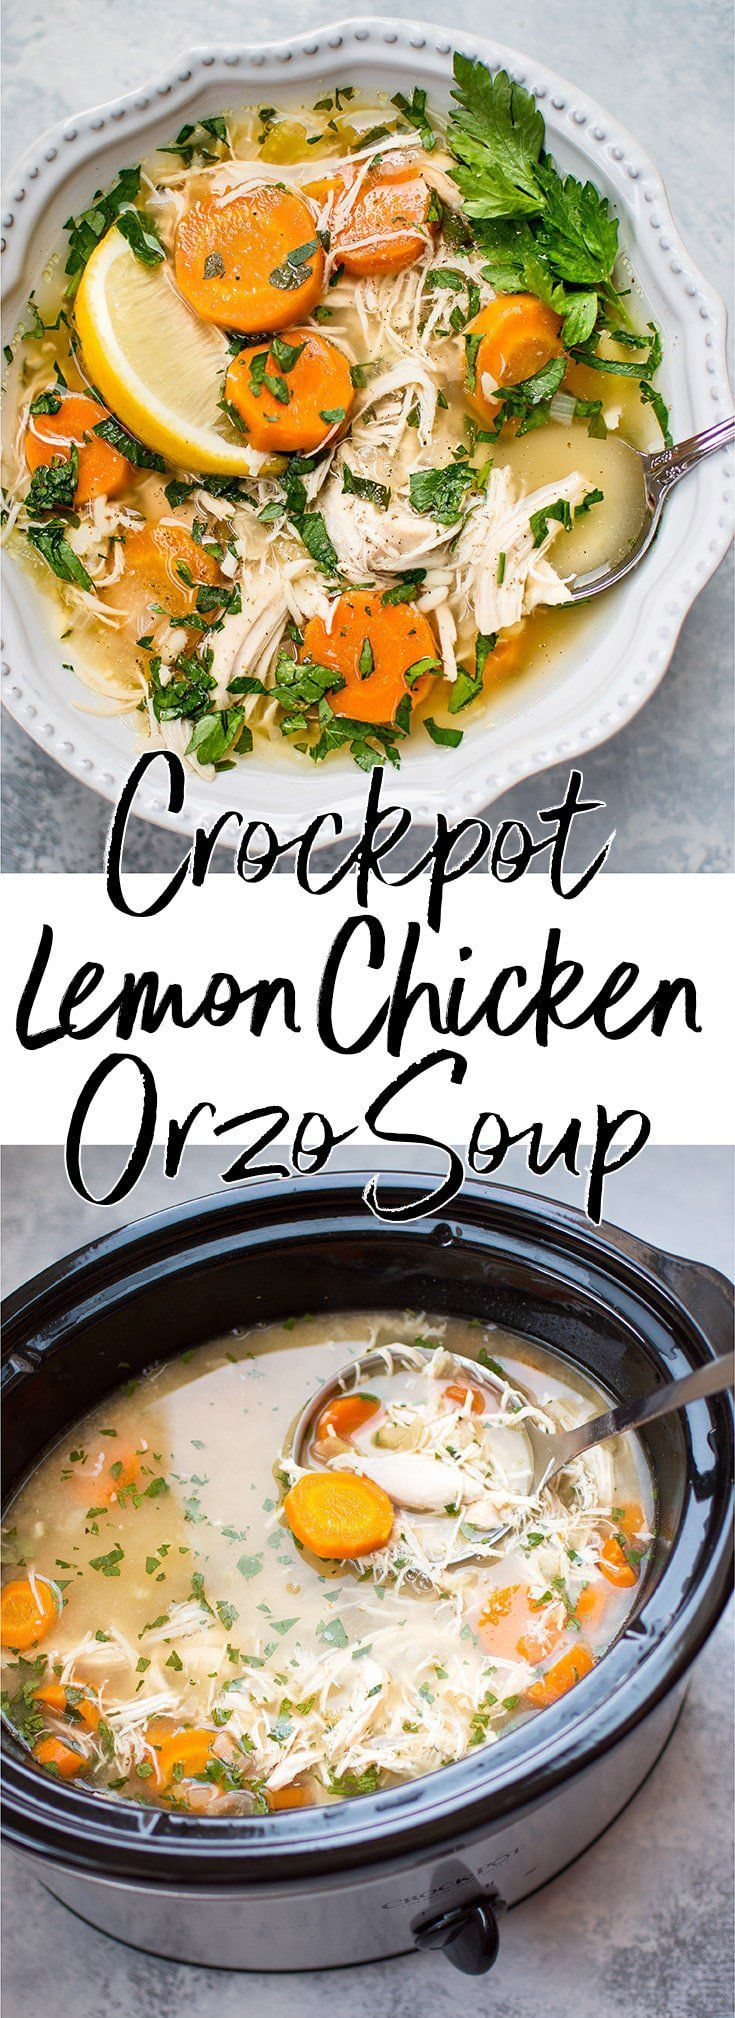 Crockpot Lemon Chicken Orzo Soup • Salt & Lavender